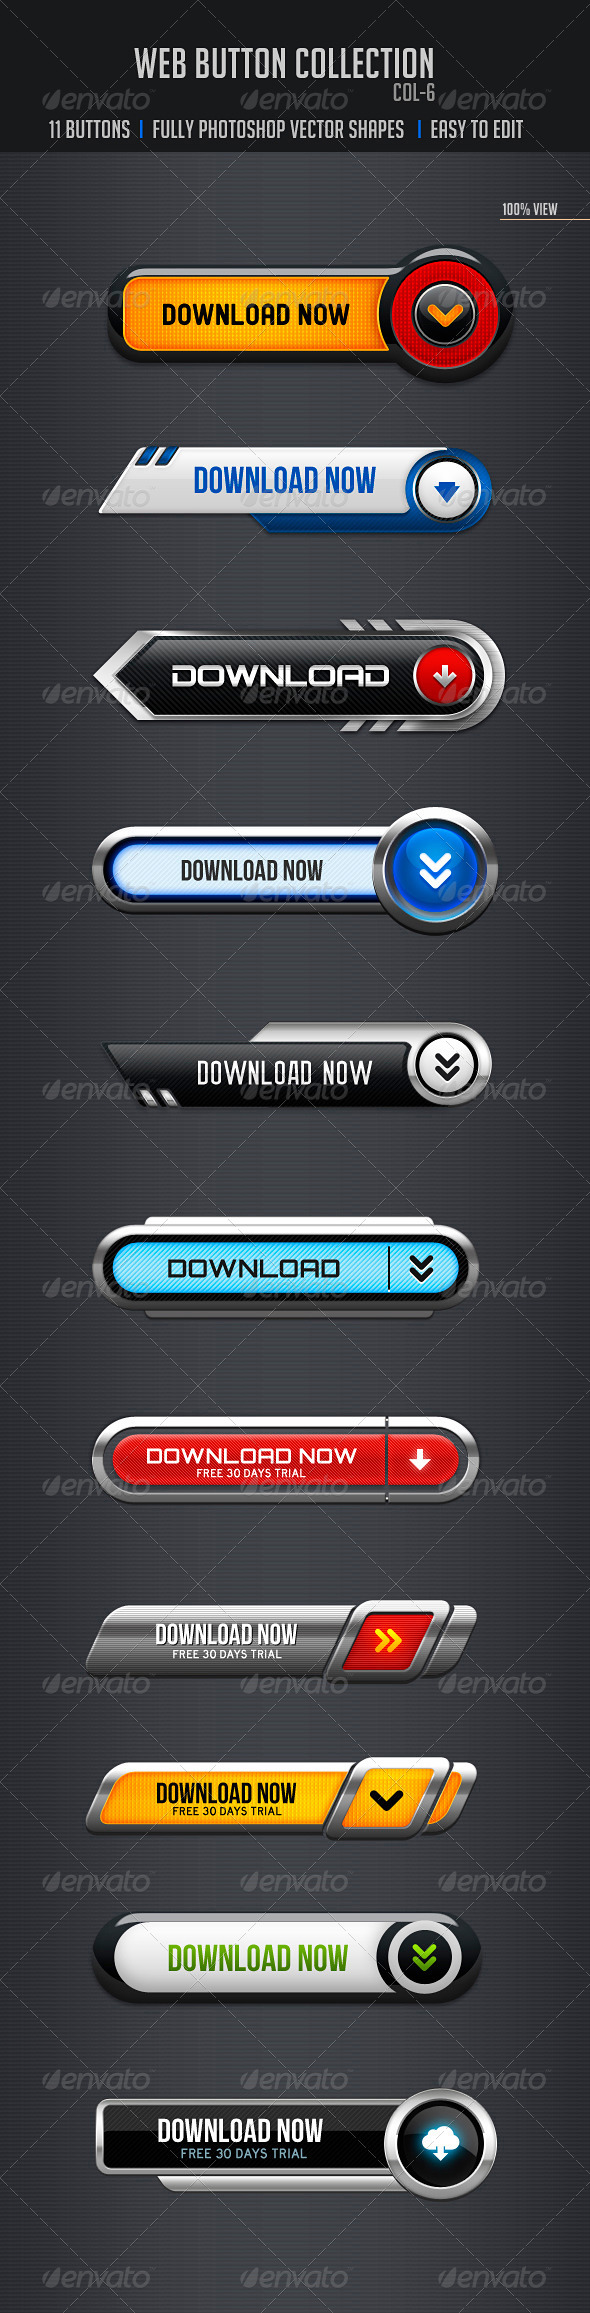 GraphicRiver Web Buttons Col-6 5037303